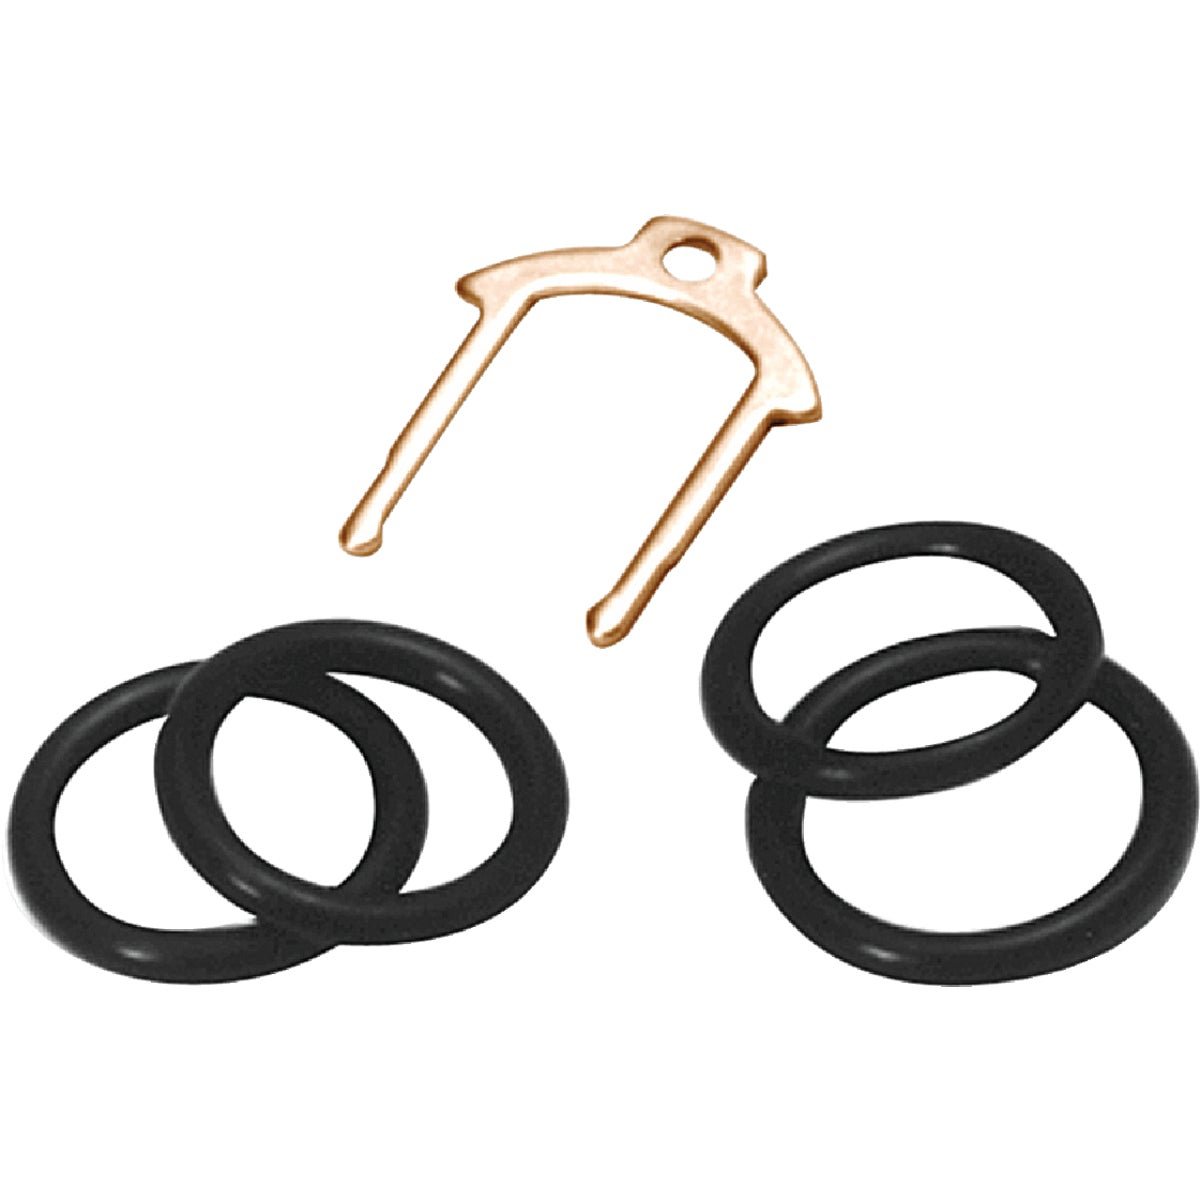 MOEN REPAIR KIT